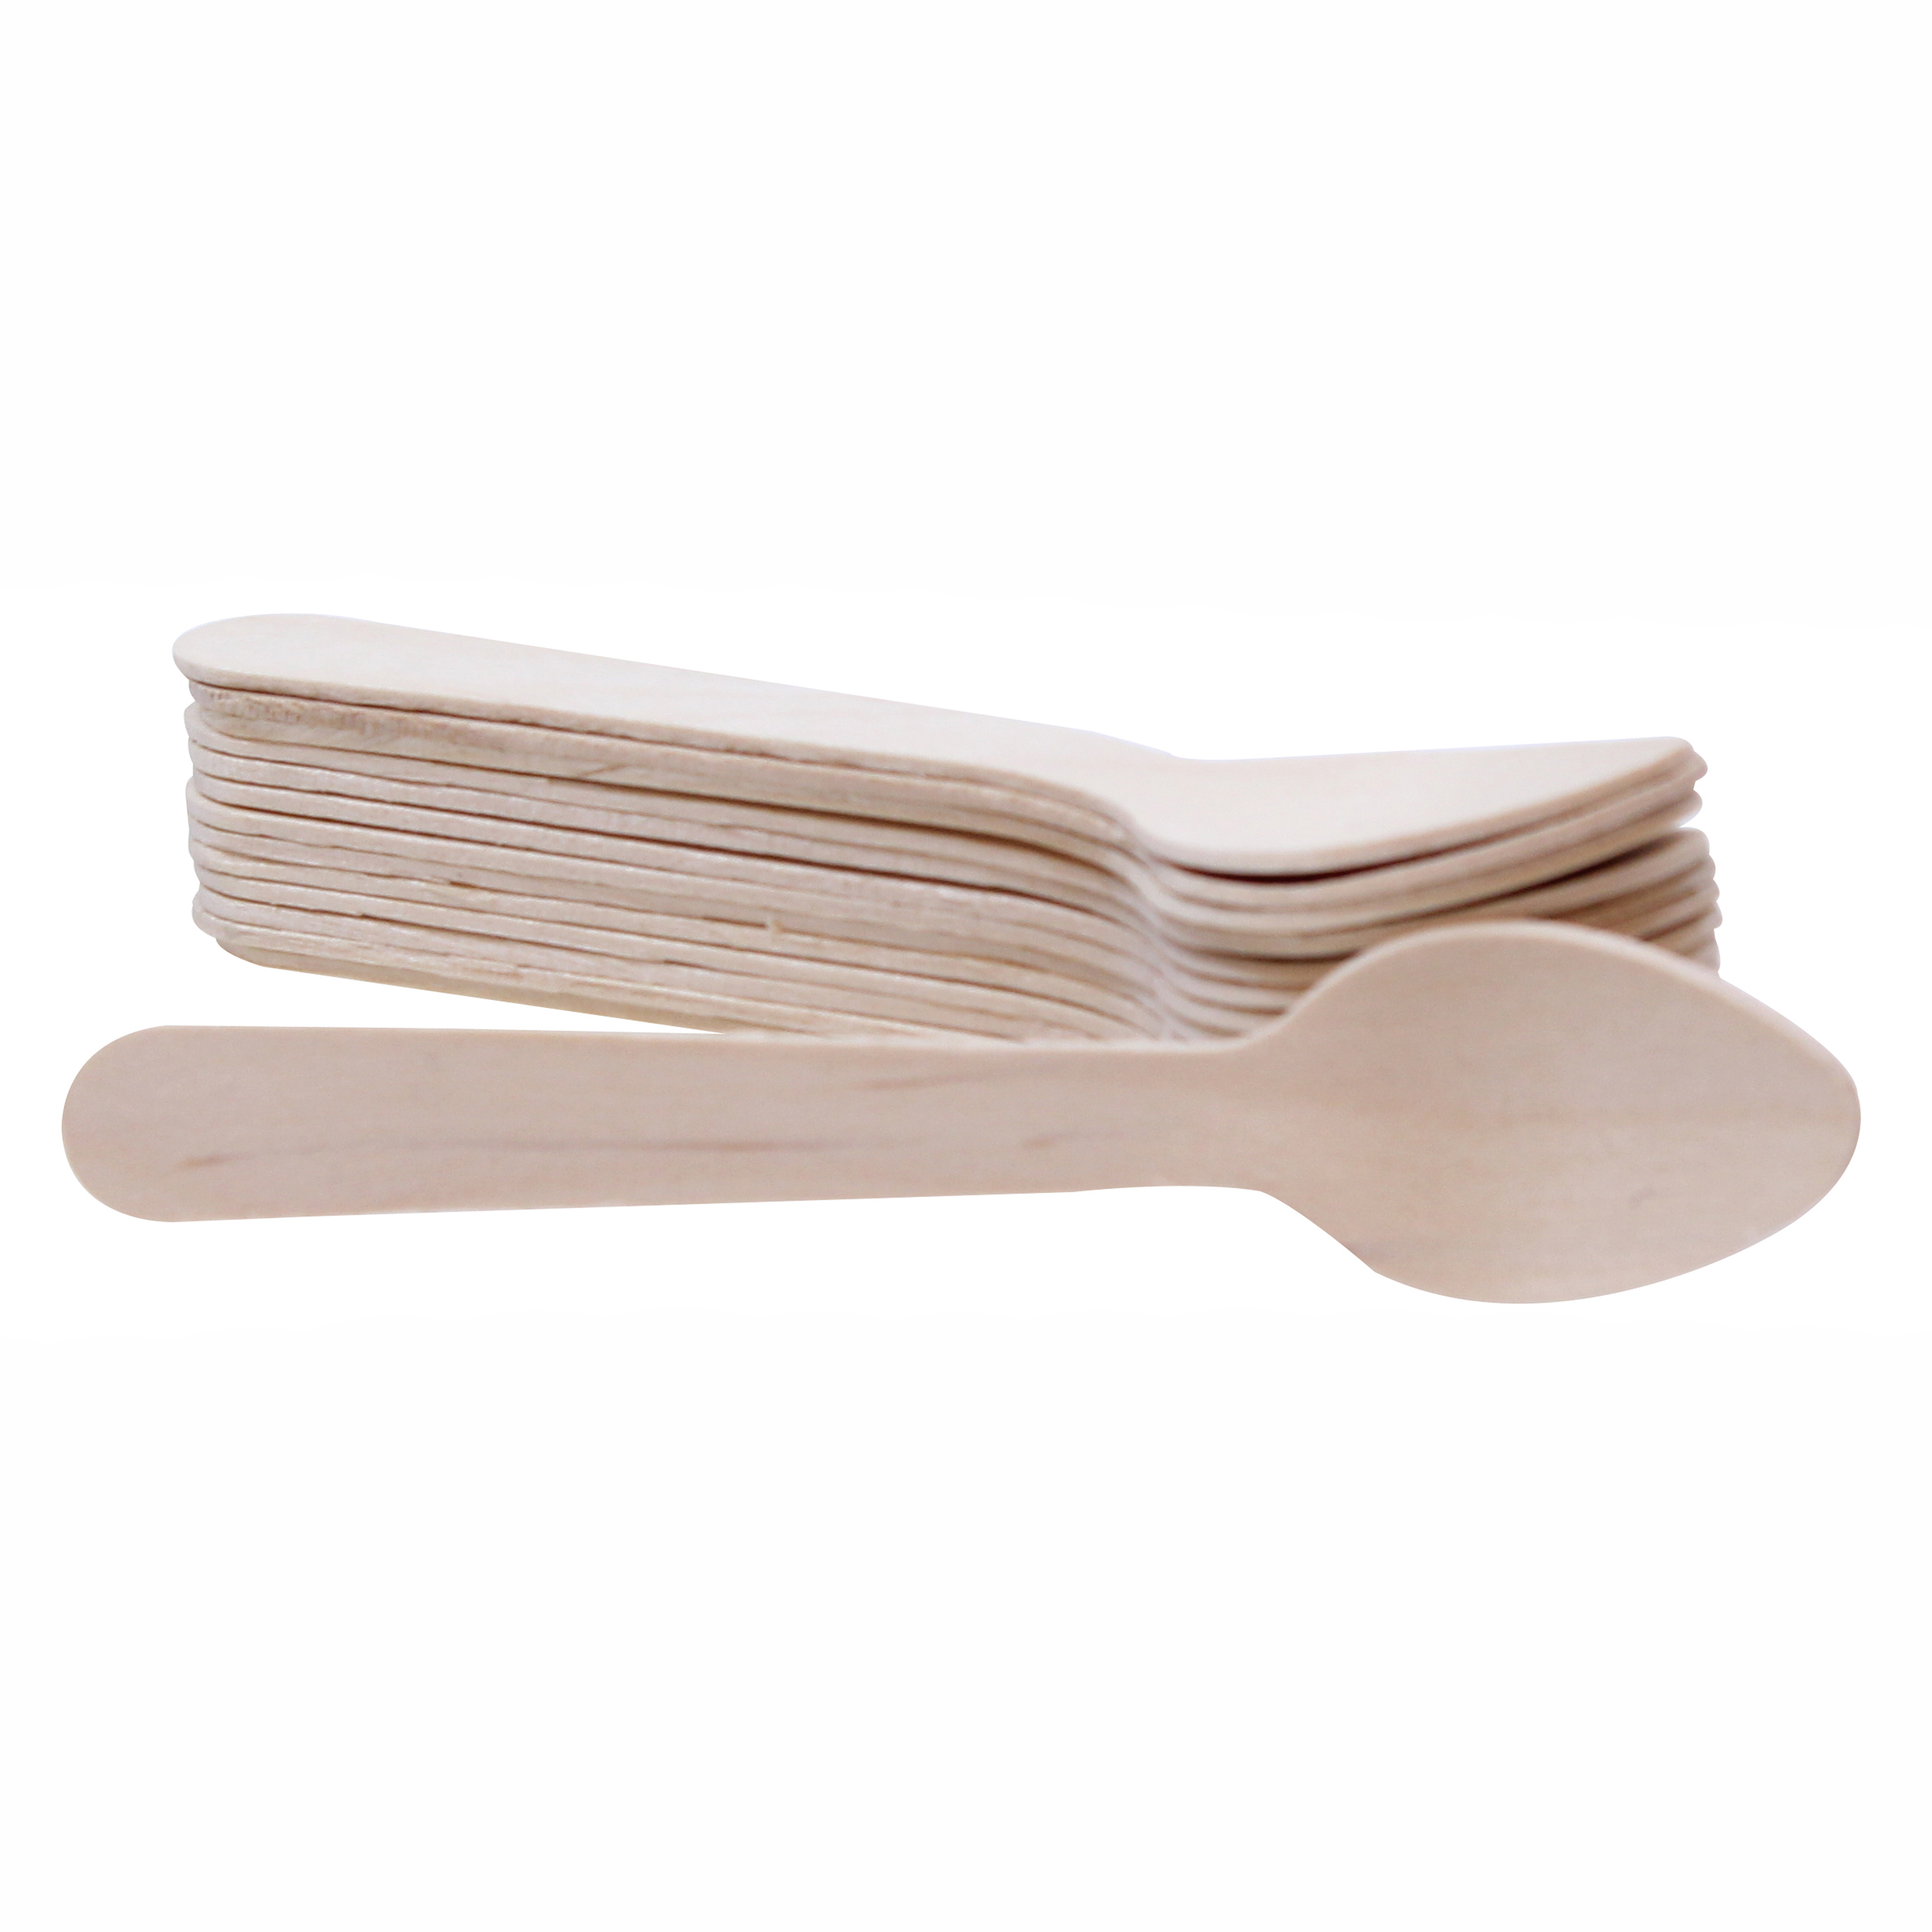 TableCraft Products BAMSP425 disposable bamboo & accessories